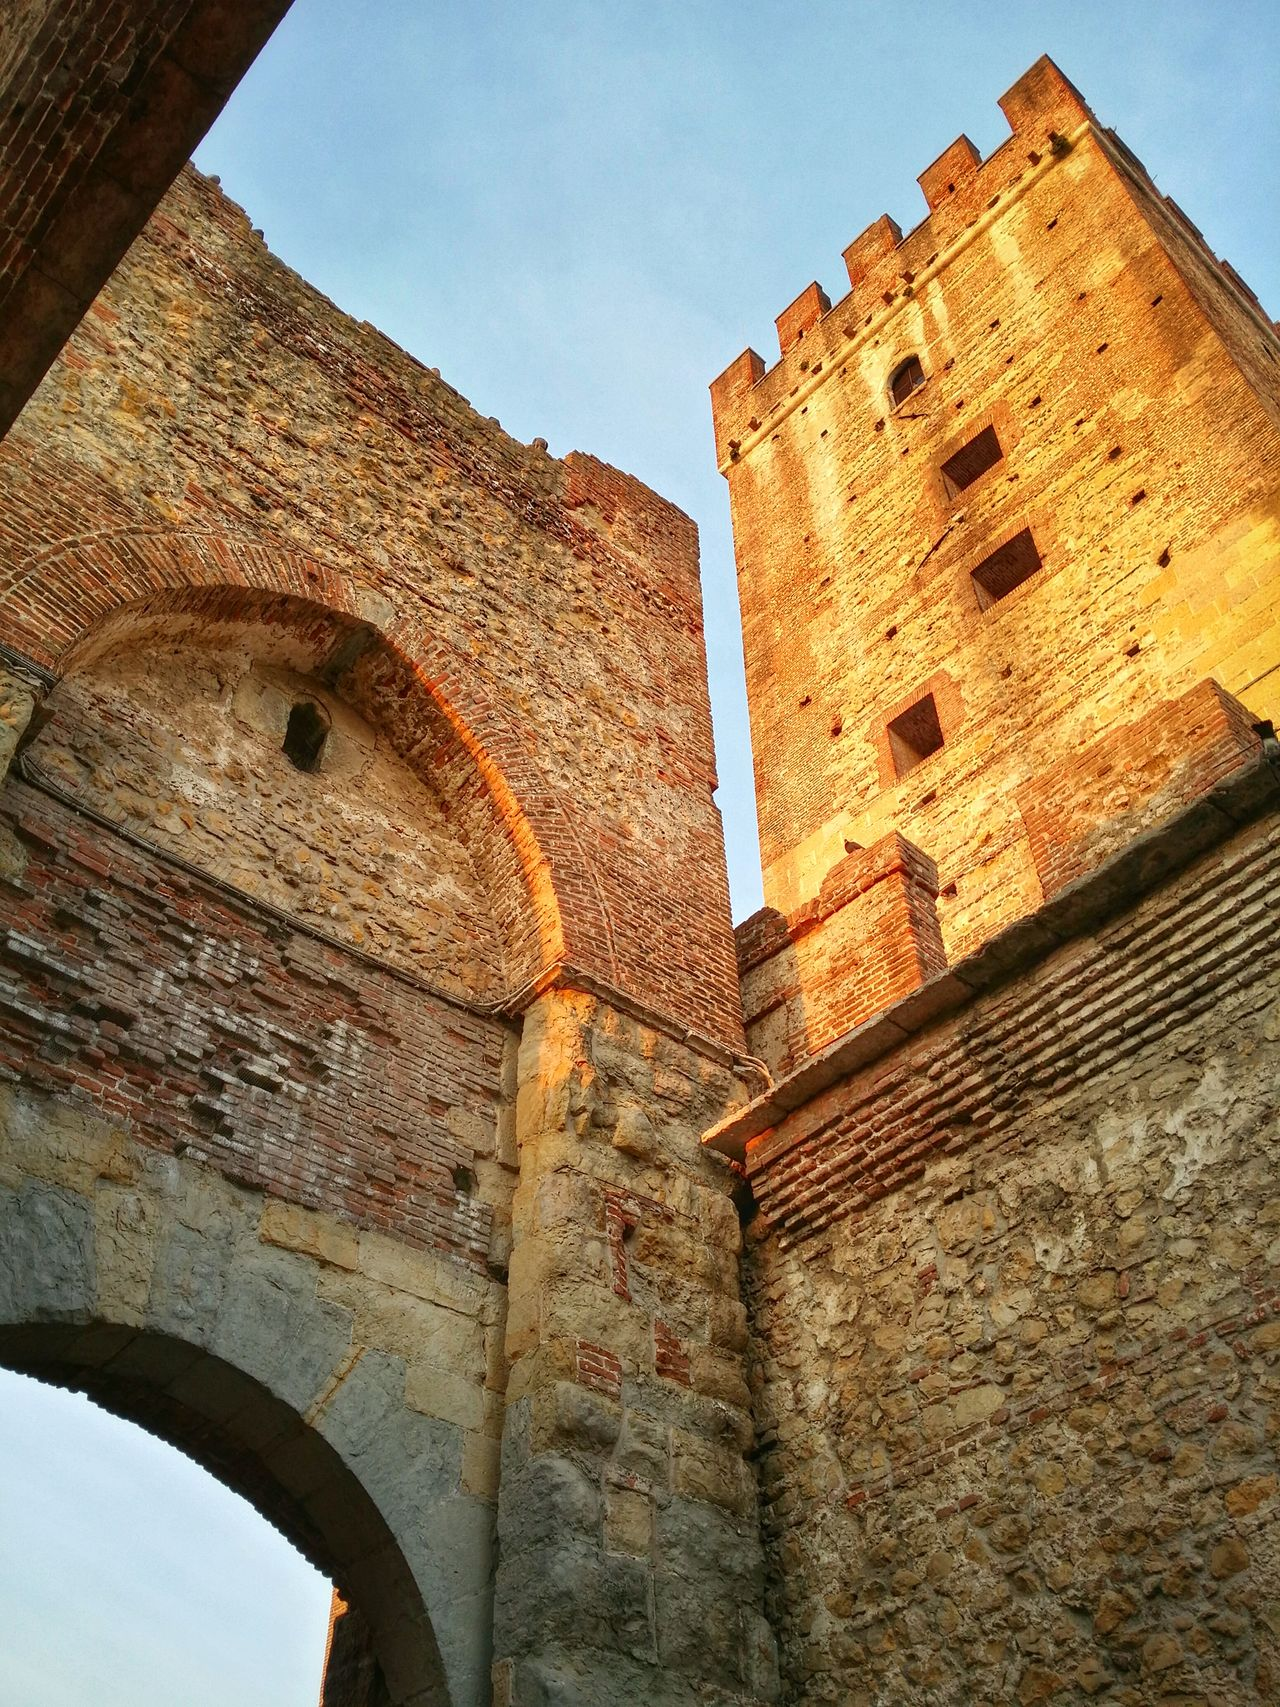 Marostica, Italy Looking Upward Medieval Walls Red Brick Walls Watch Towers Sunset Light Golden Light Leading Lines Long Shadows Wrinkles Of The City